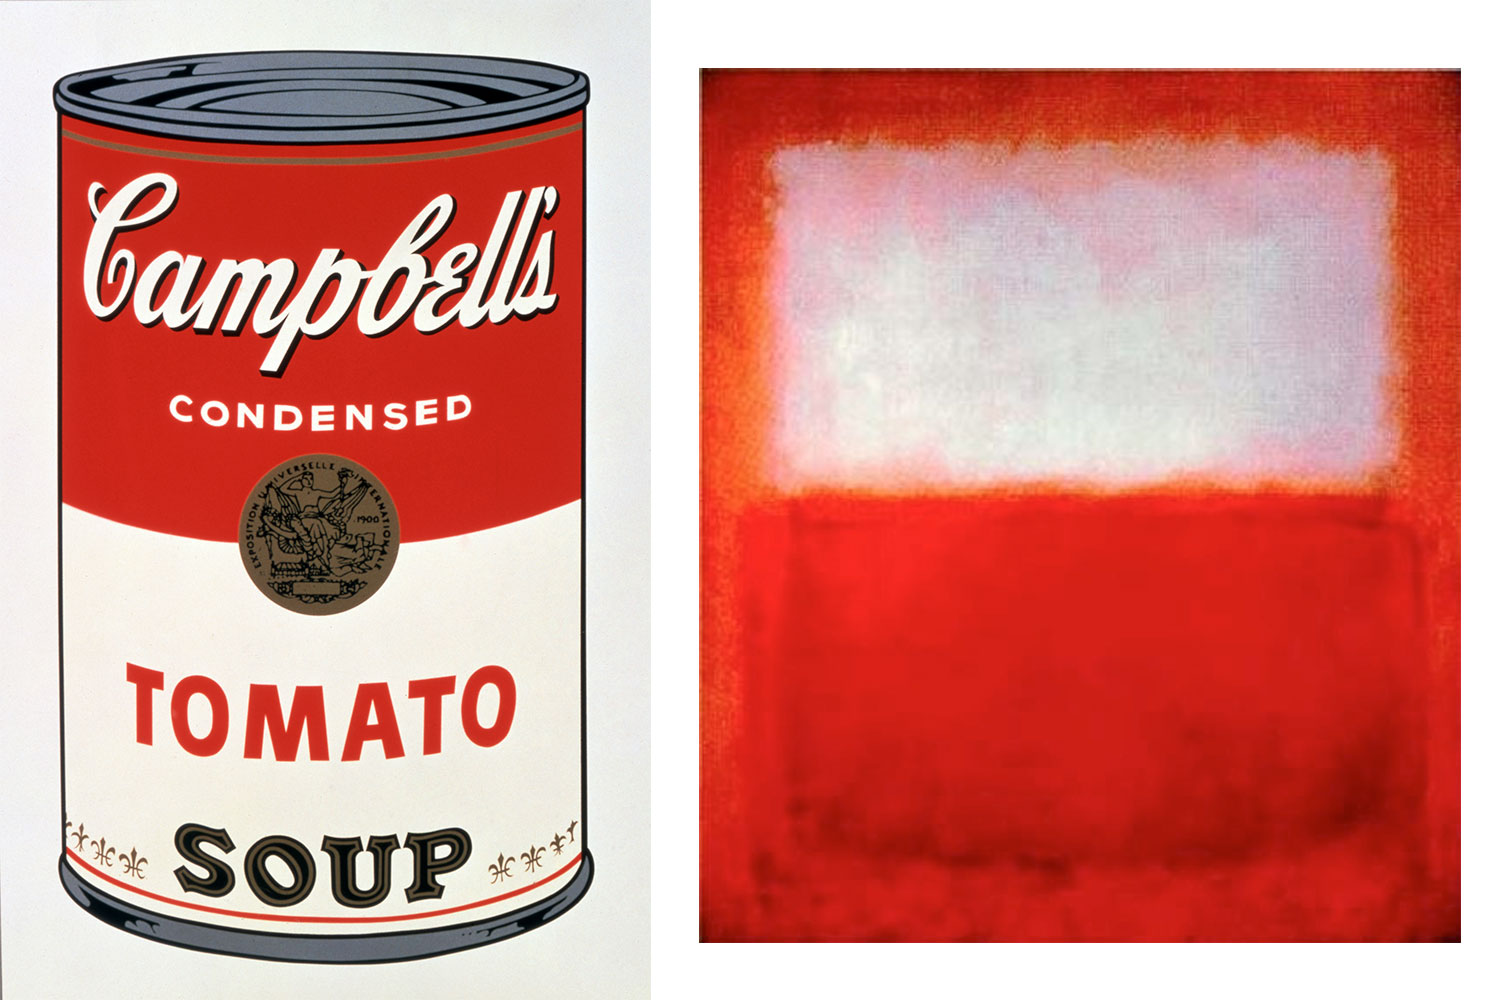 andy warhol soup can The andy warhol foundation for the visual arts was established in 1987 in accordance with andy warhol's will its mission is the advancement of the visual arts.